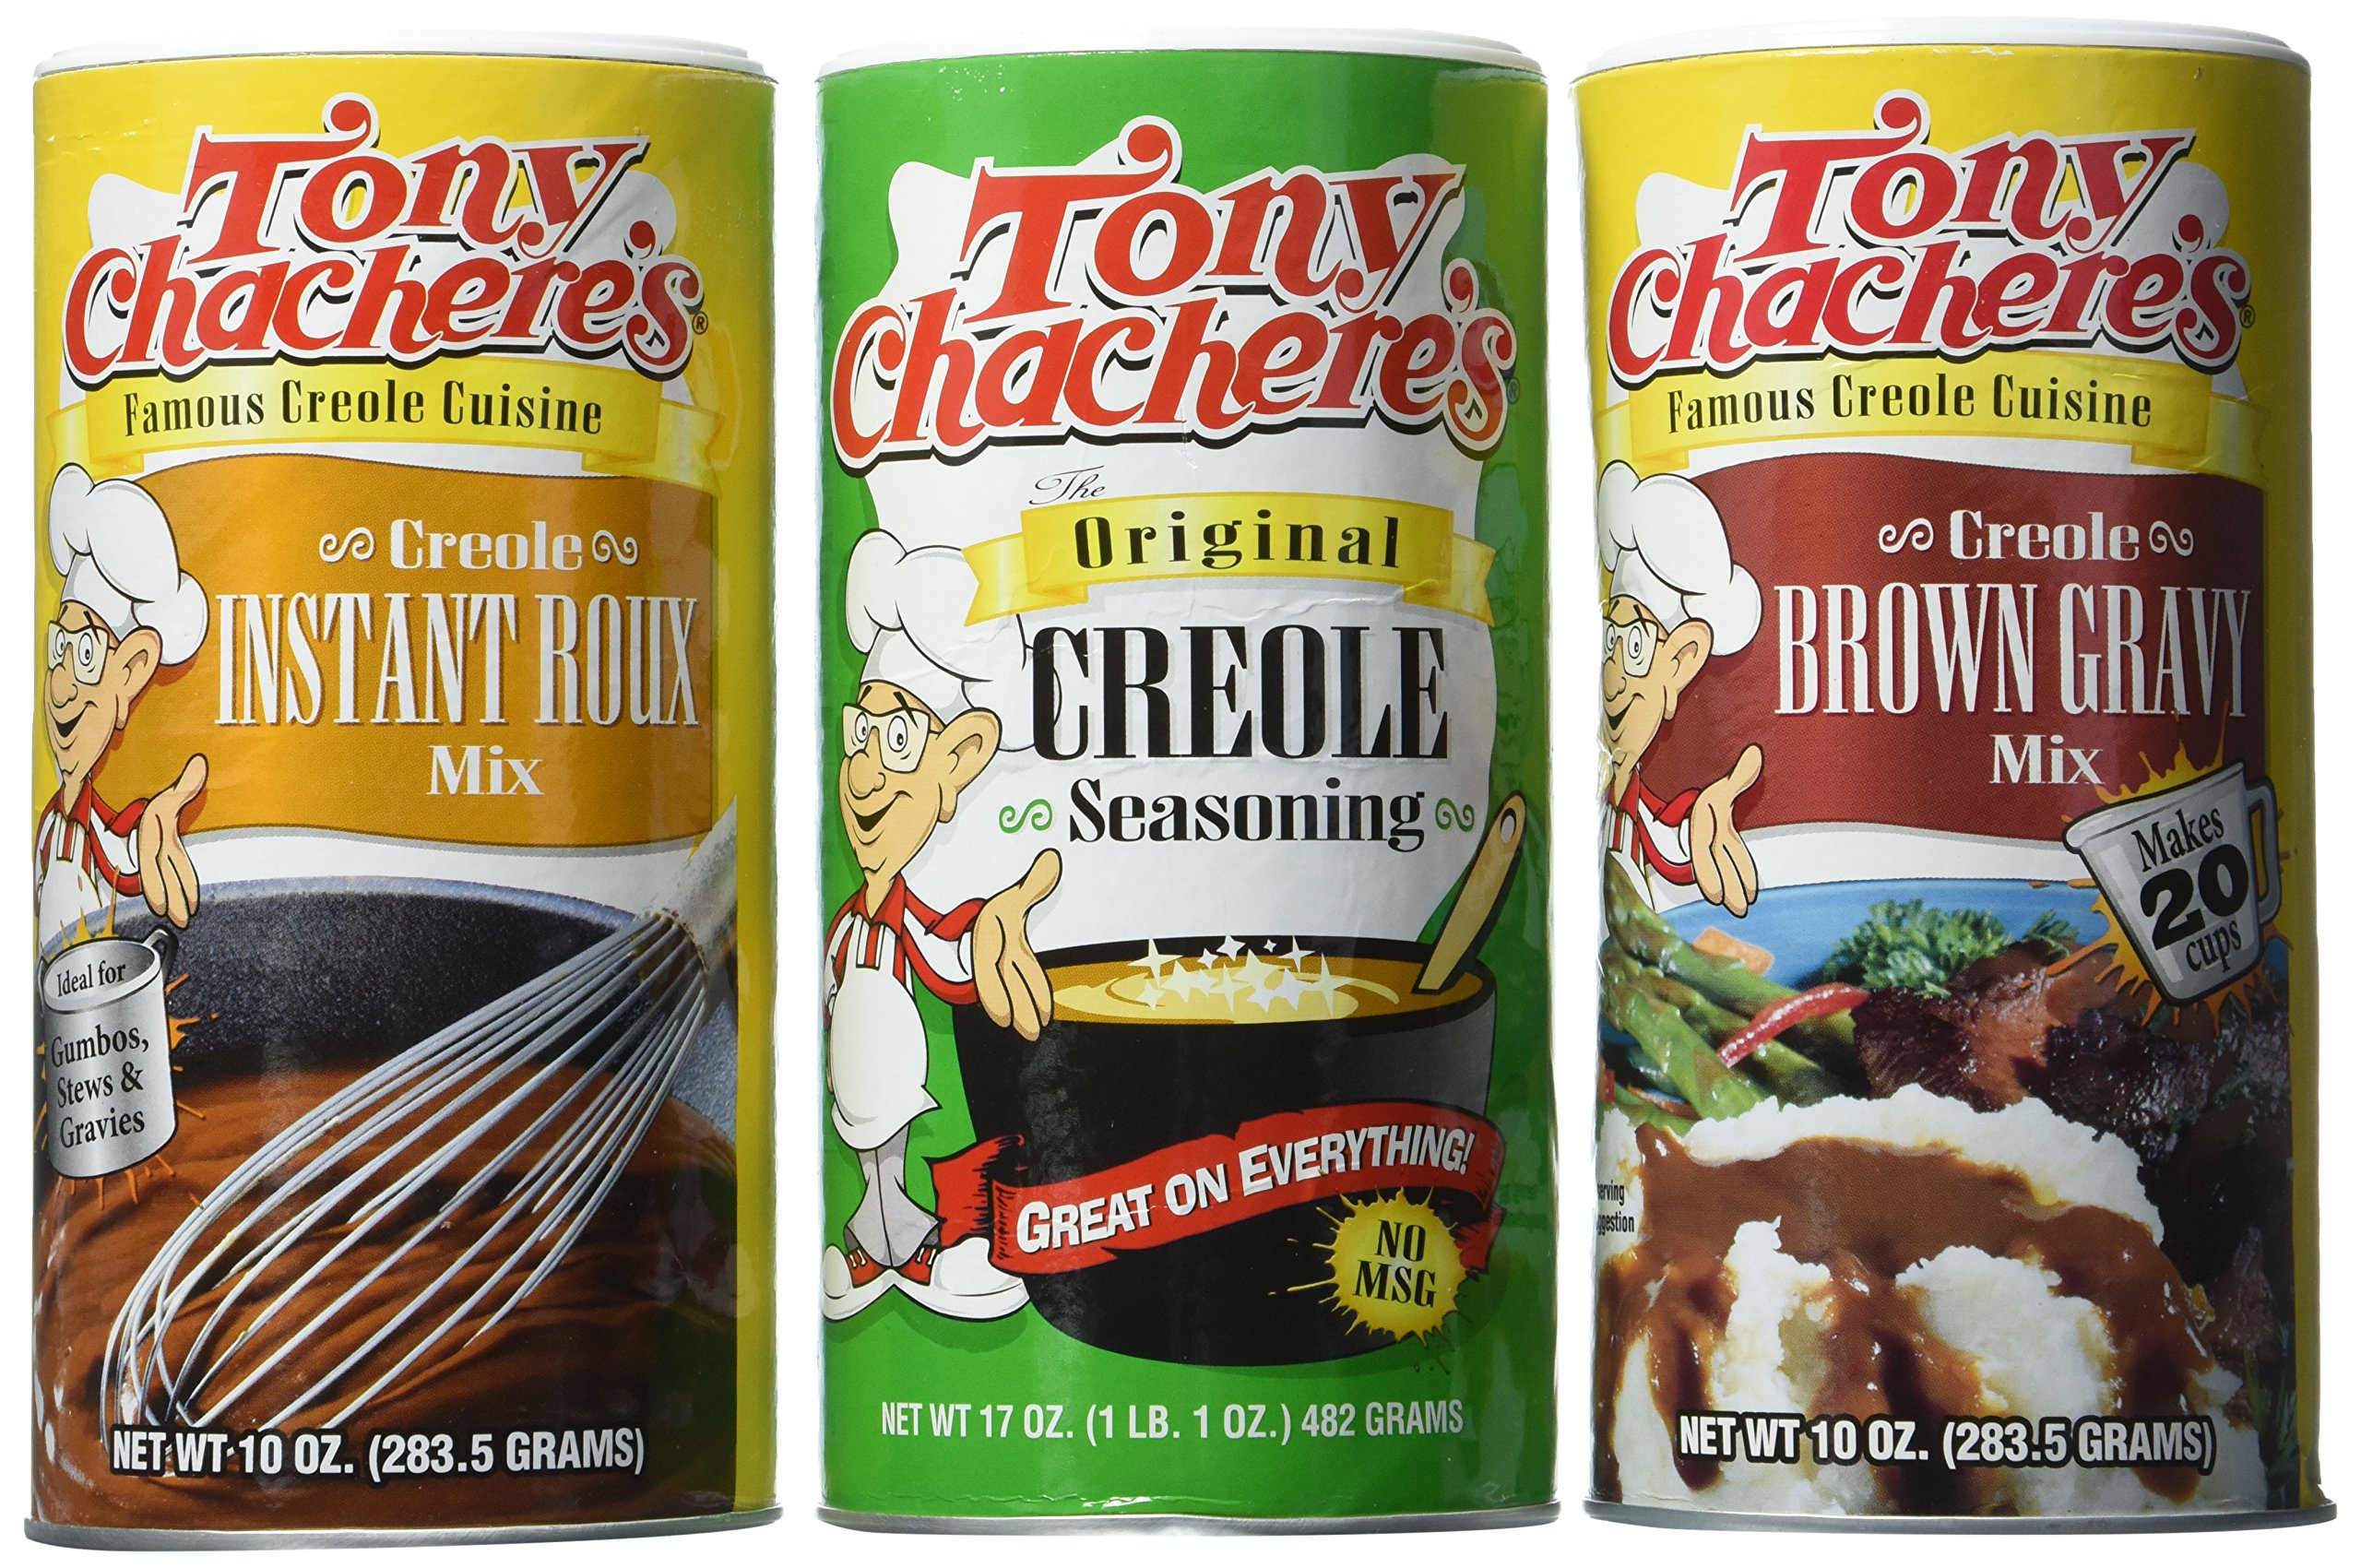 Tony Chachere's Famous Creole Cuisine Seasoning and Mix 3 Flavor Variety Bundle: (1) Tony Chachere's Original Creole Seasoning, 17 oz., (1) Tony Chachere's Creole Instant Roux Mix, 10 Oz., and (1) Tony Chachere's Creole Brown Gravy Mix, 10 Oz.